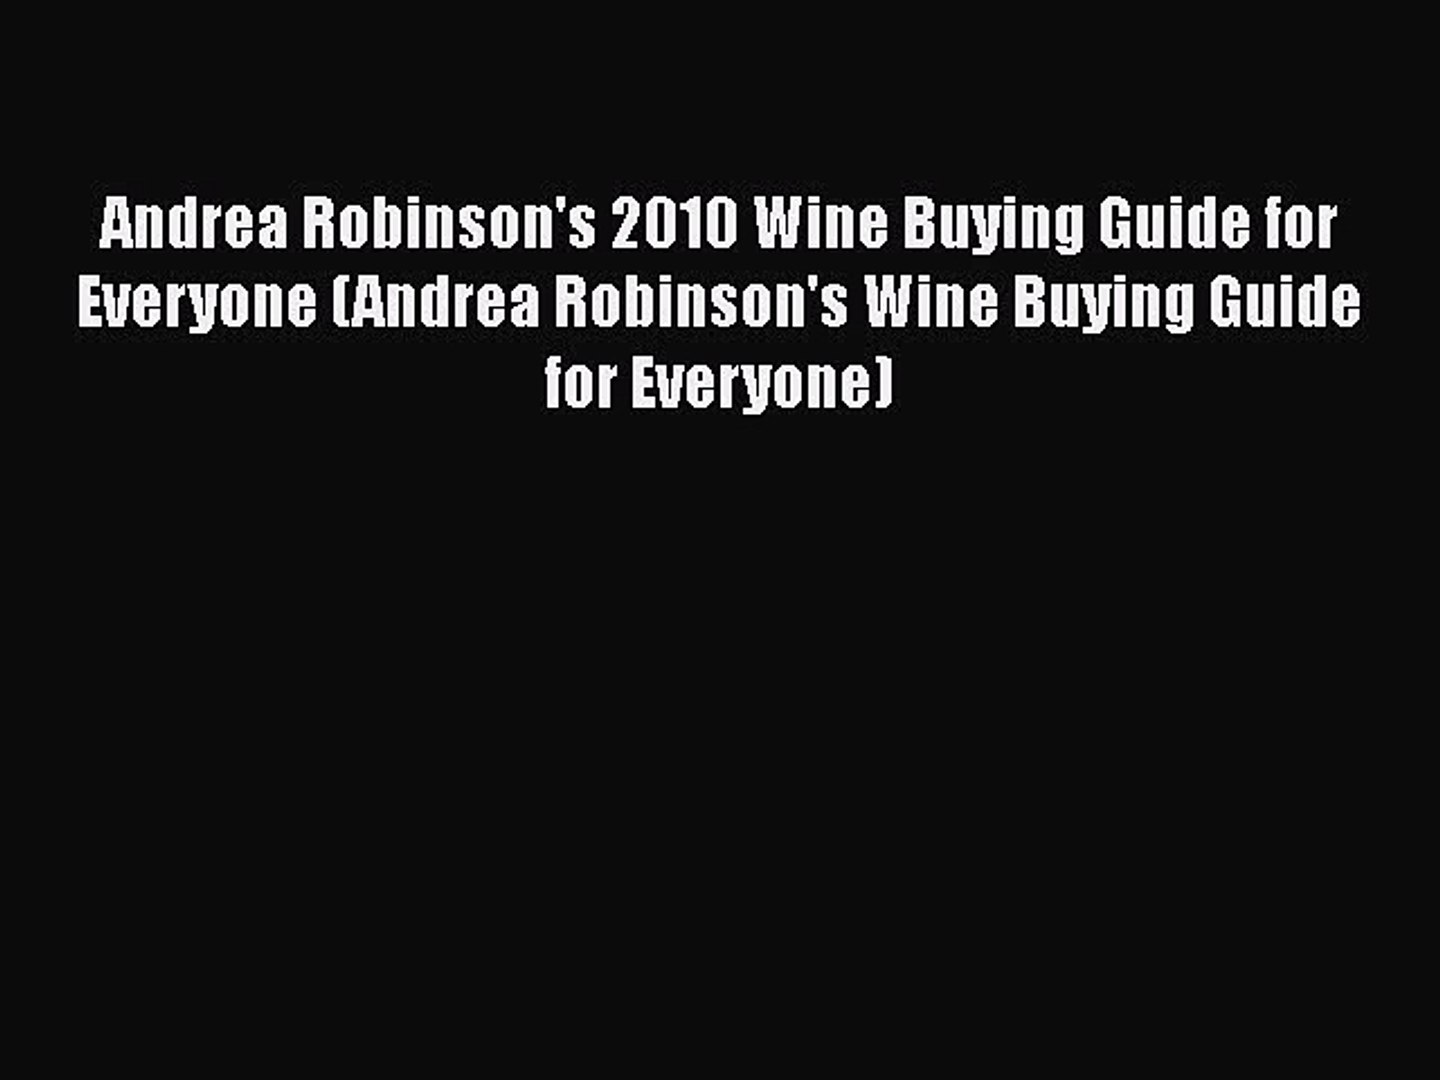 [PDF] Andrea Robinson's 2010 Wine Buying Guide for Everyone (Andrea Robinson's Wine Buying